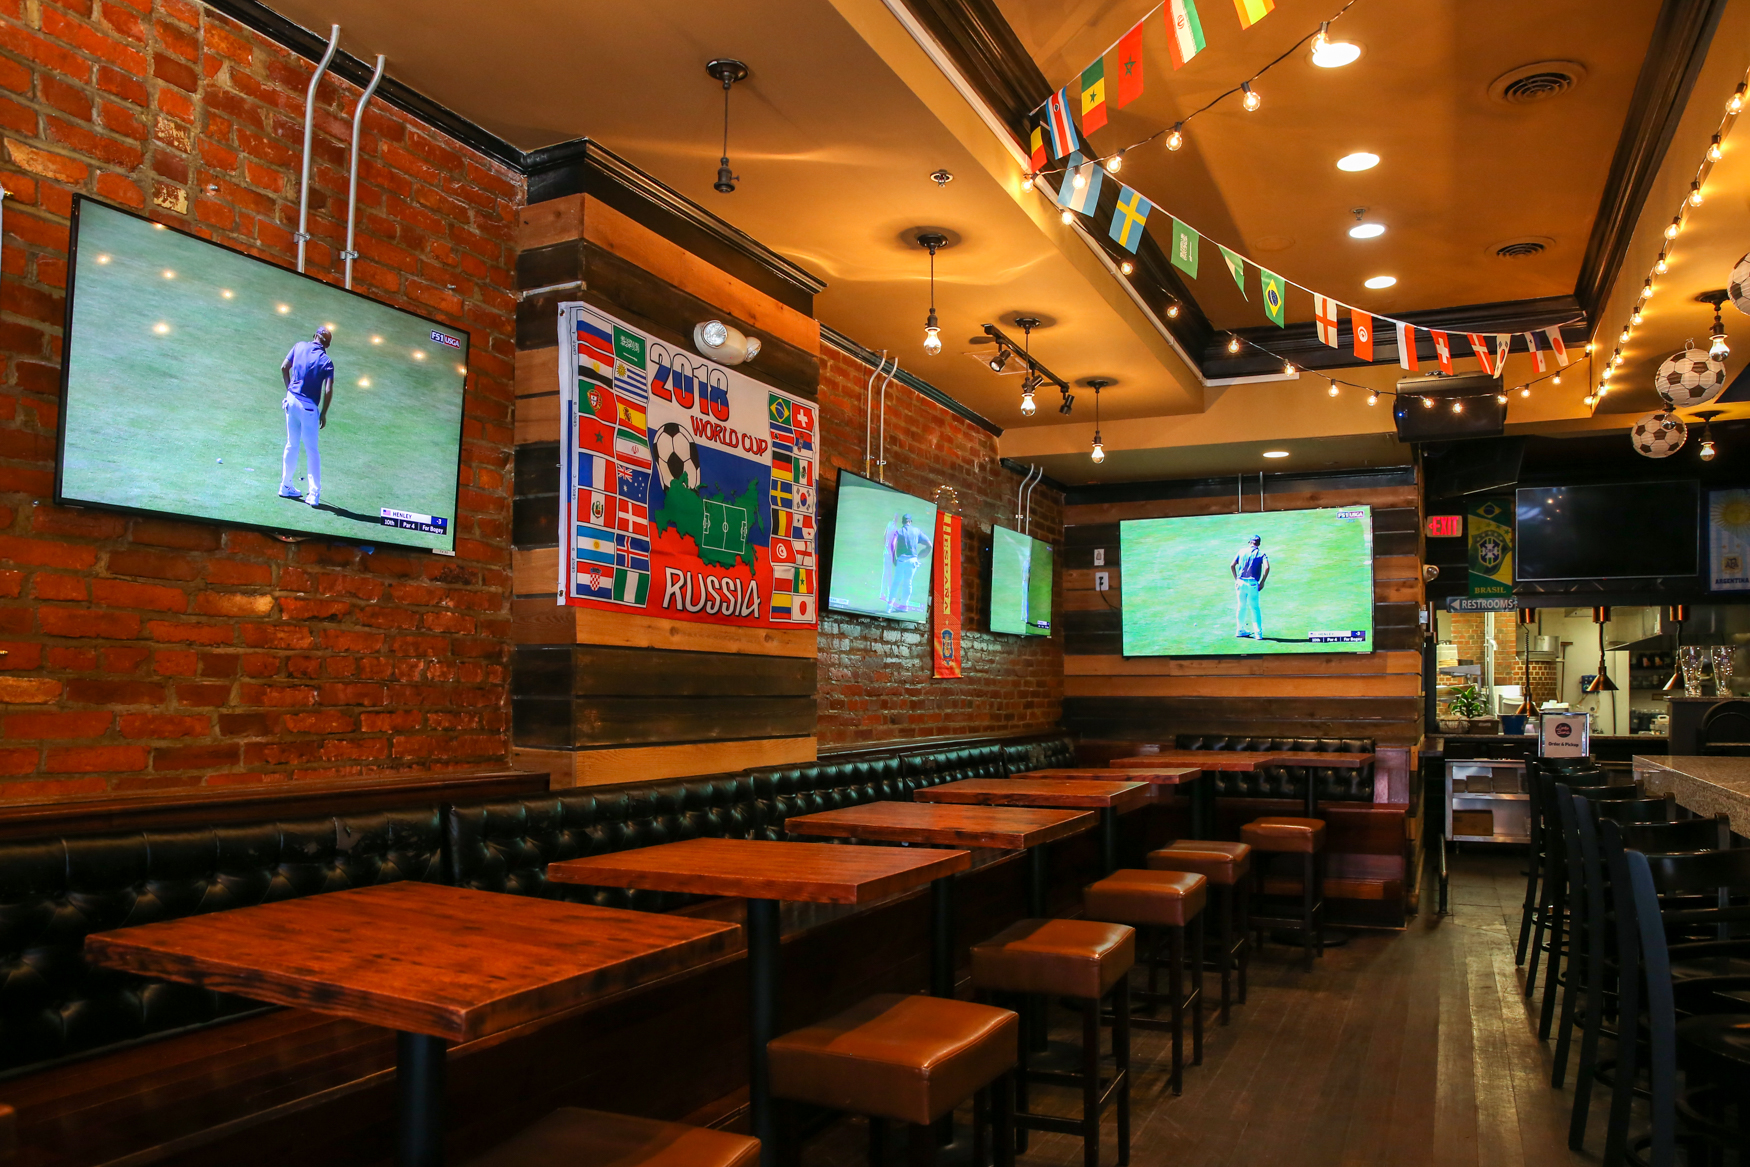 The World Cup might be in Russia, but you can feel close to the action at World Cup HQ, a pop-up bar at 1214 U St NW. Between June 15 and July 15, you can nosh on burgers from Lucky Buns' Alex McCoy, who is creating a menu inspired by the competing teams. For those who want to channel their inner hooligan, there's plenty of booze, including special World Cup-themed beer, shareable cocktails and frosé. Don't worry about that time difference - the bar opens at 8 a.m. and they replay the day's games at happy hour. (Amanda Andrade-Rhoades/DC Refined)